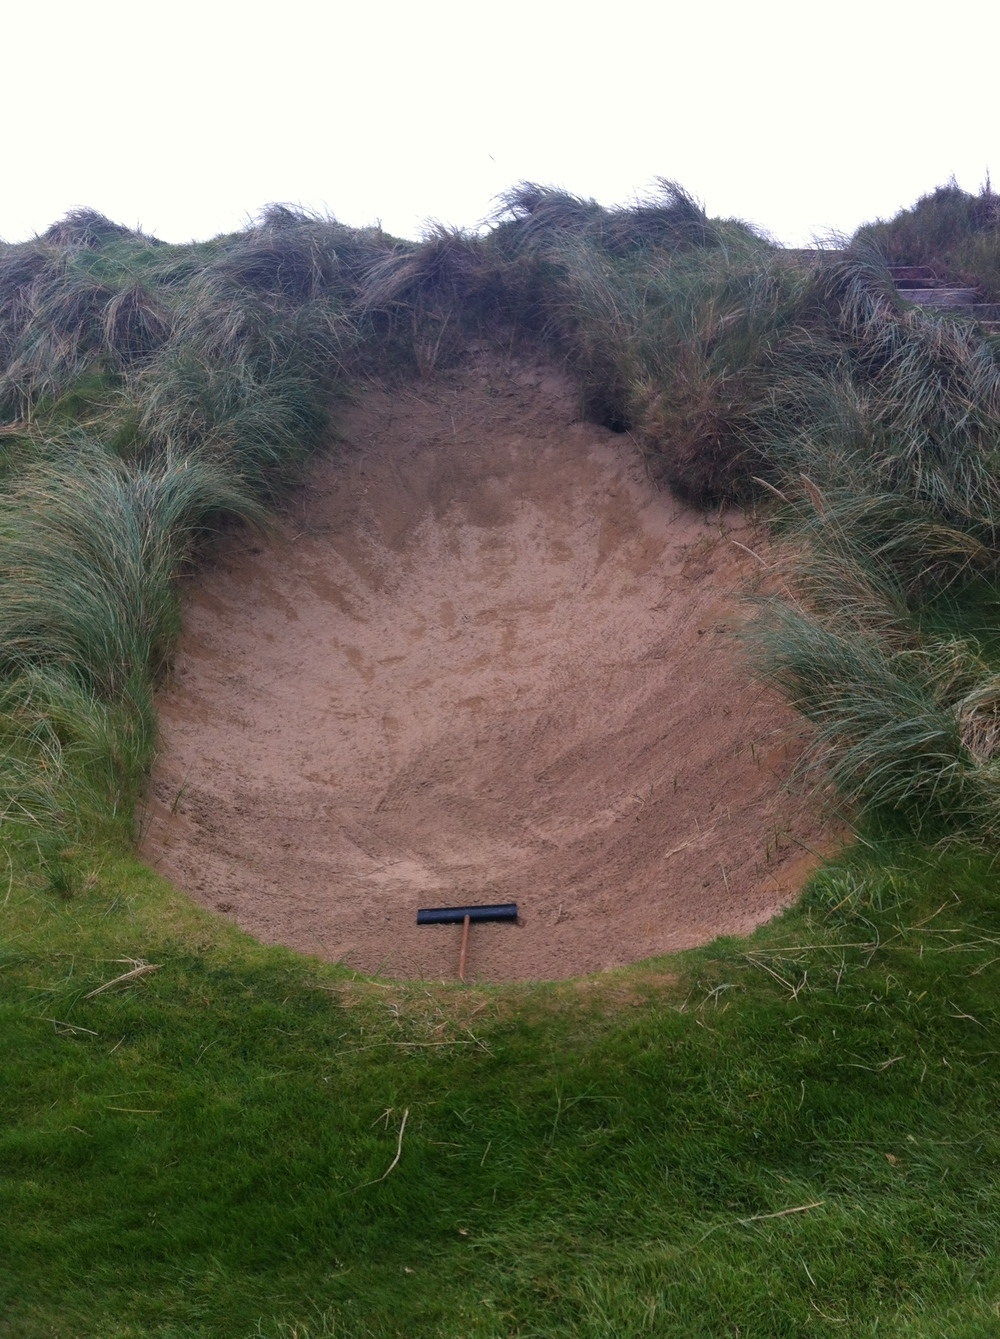 The ugliest bunker I have ever seen.